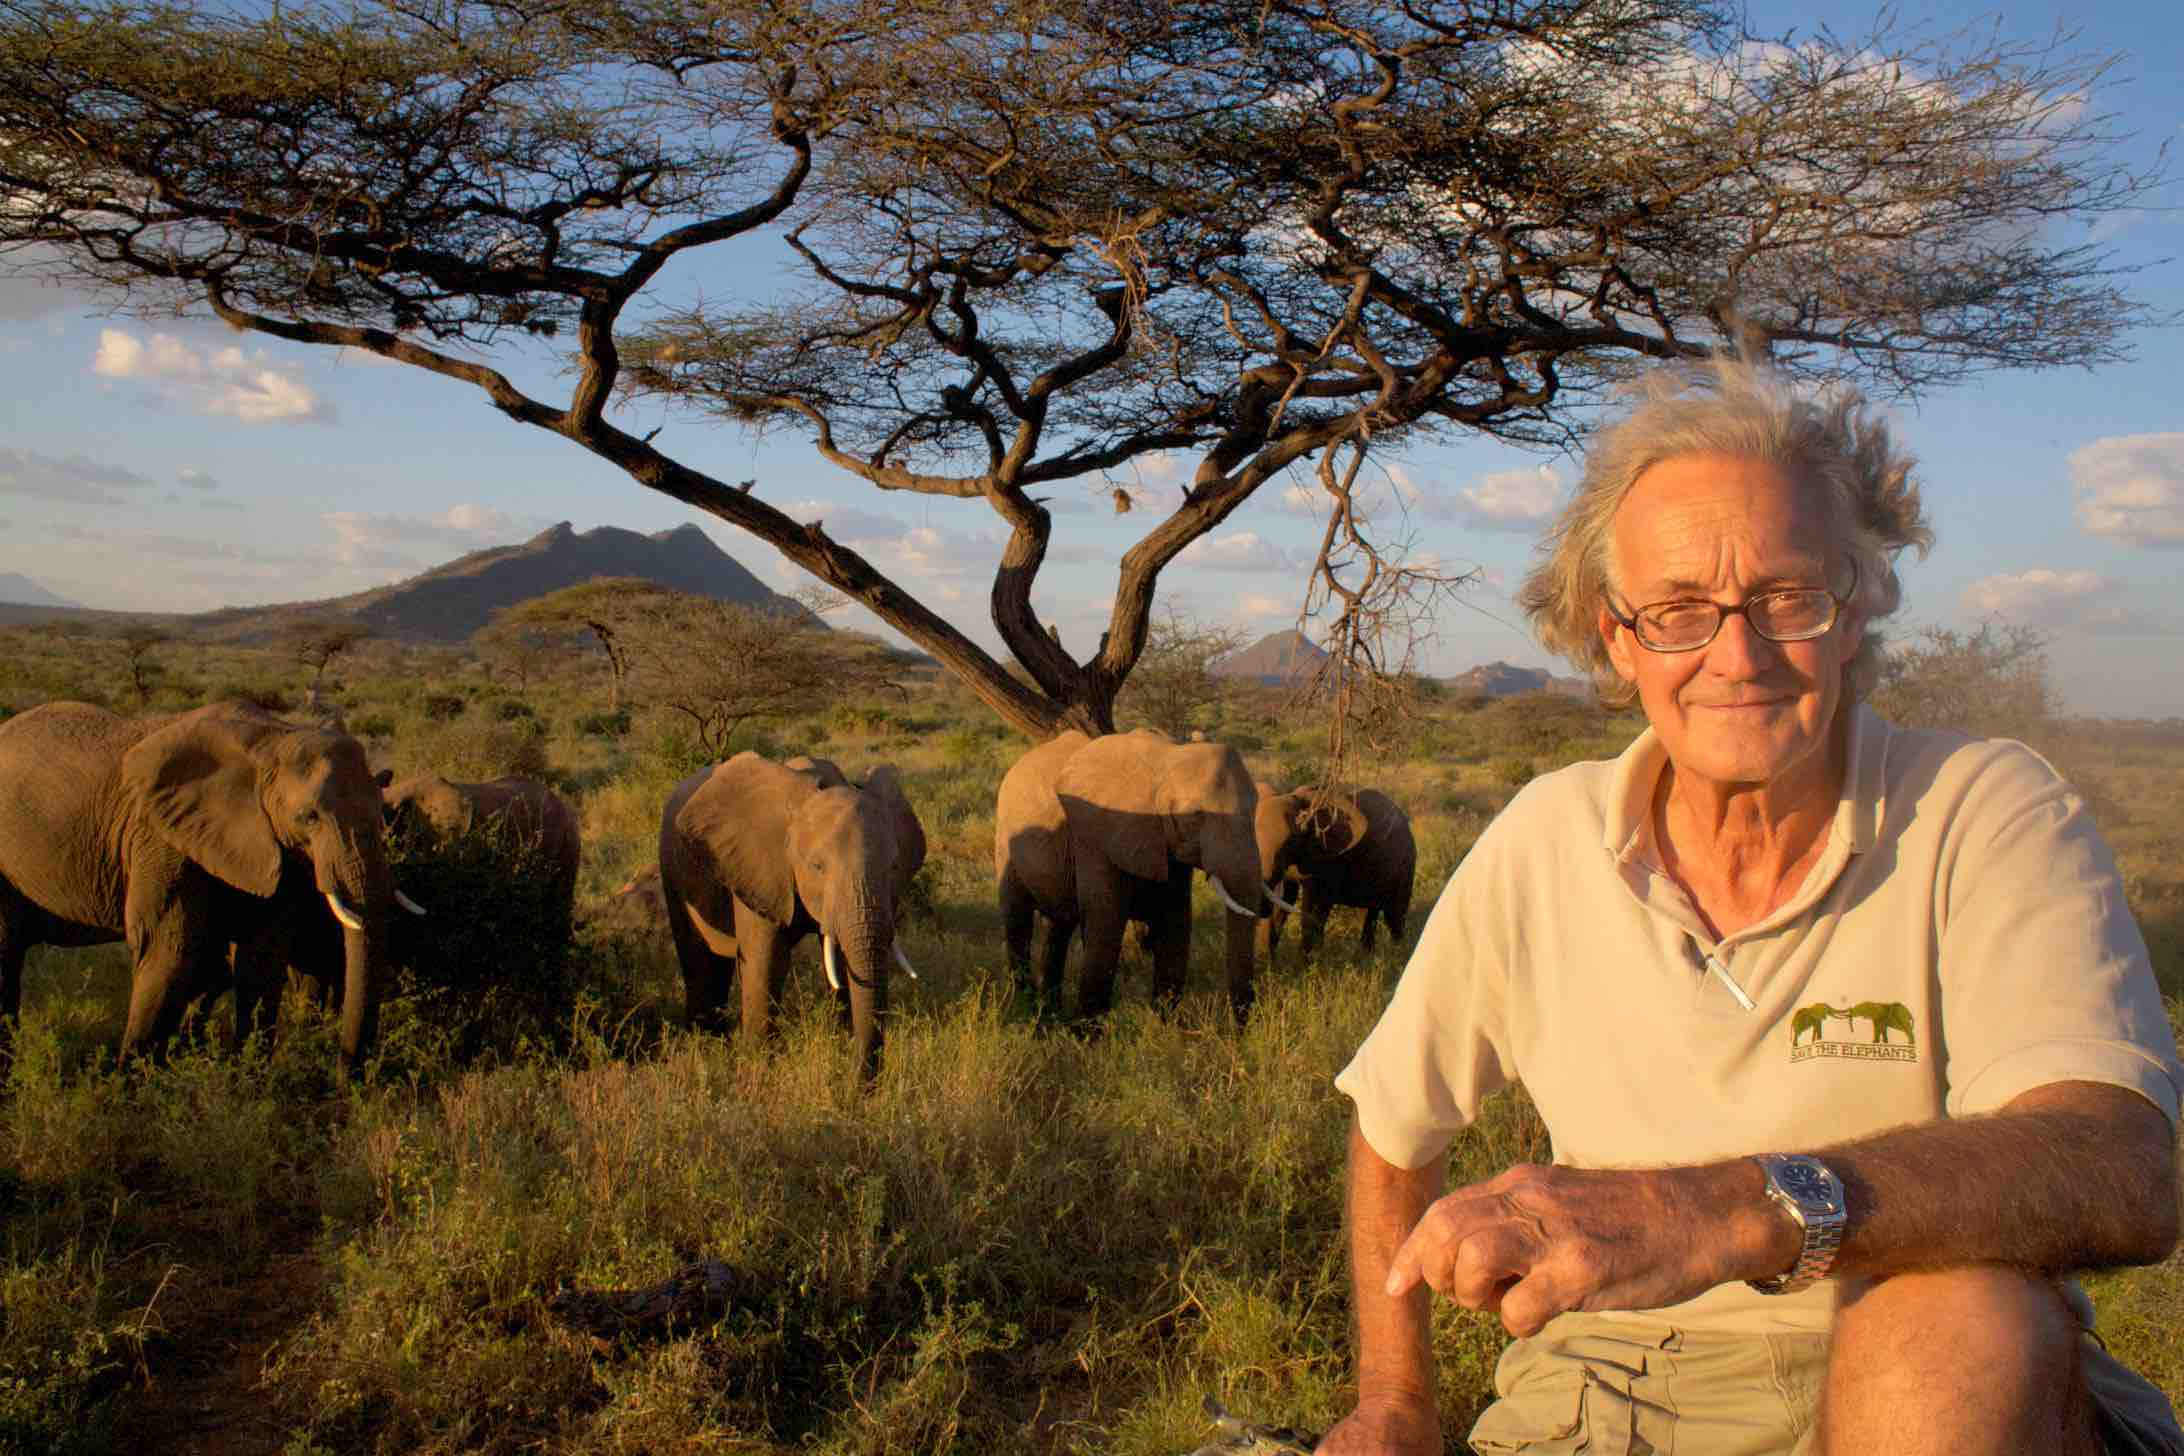 Iain Douglas Hamilton inspires for Saving Wild elephants